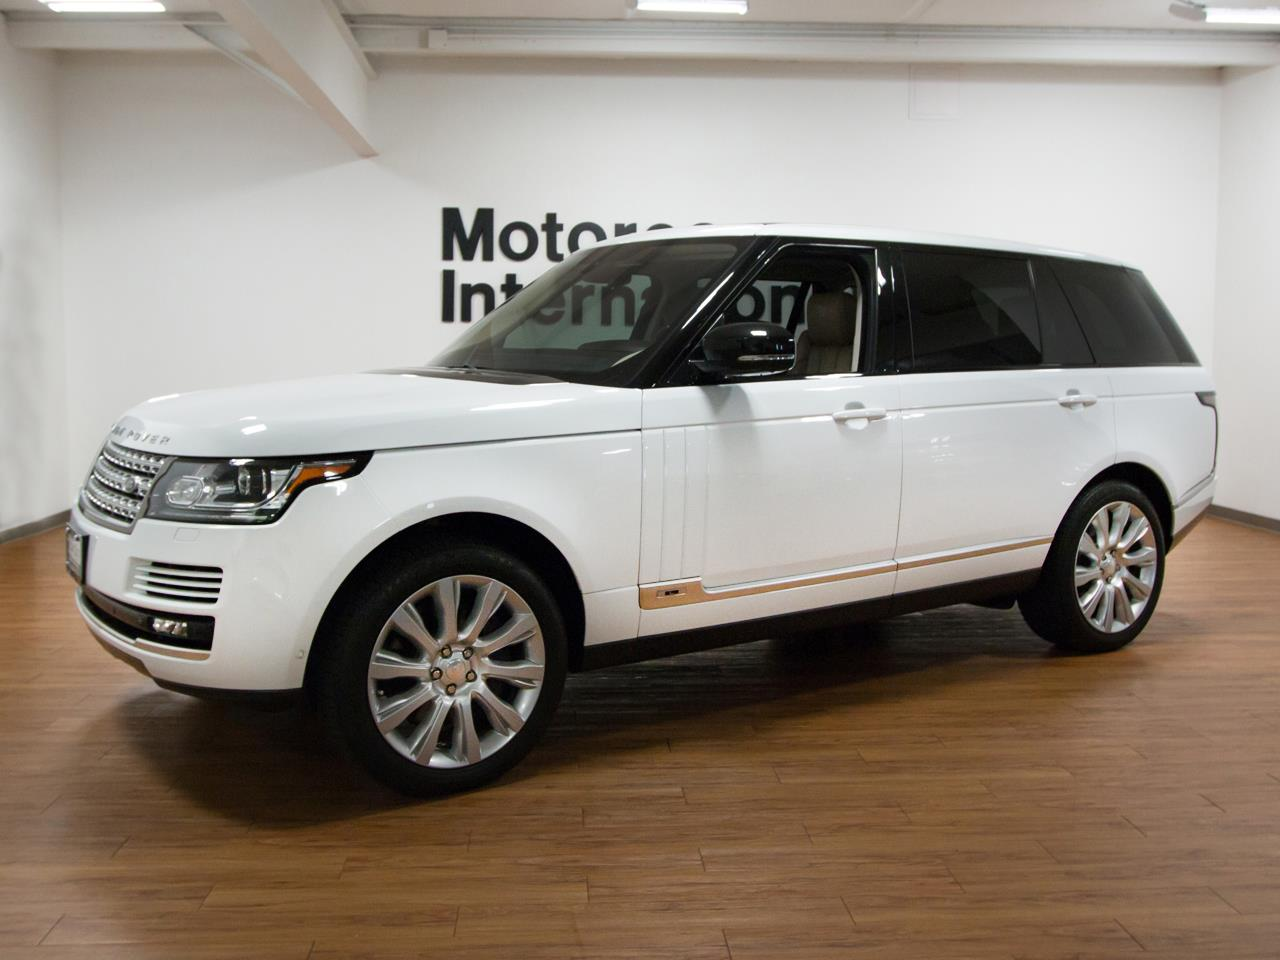 2014 Land Rover Range Rover Supercharged LWB